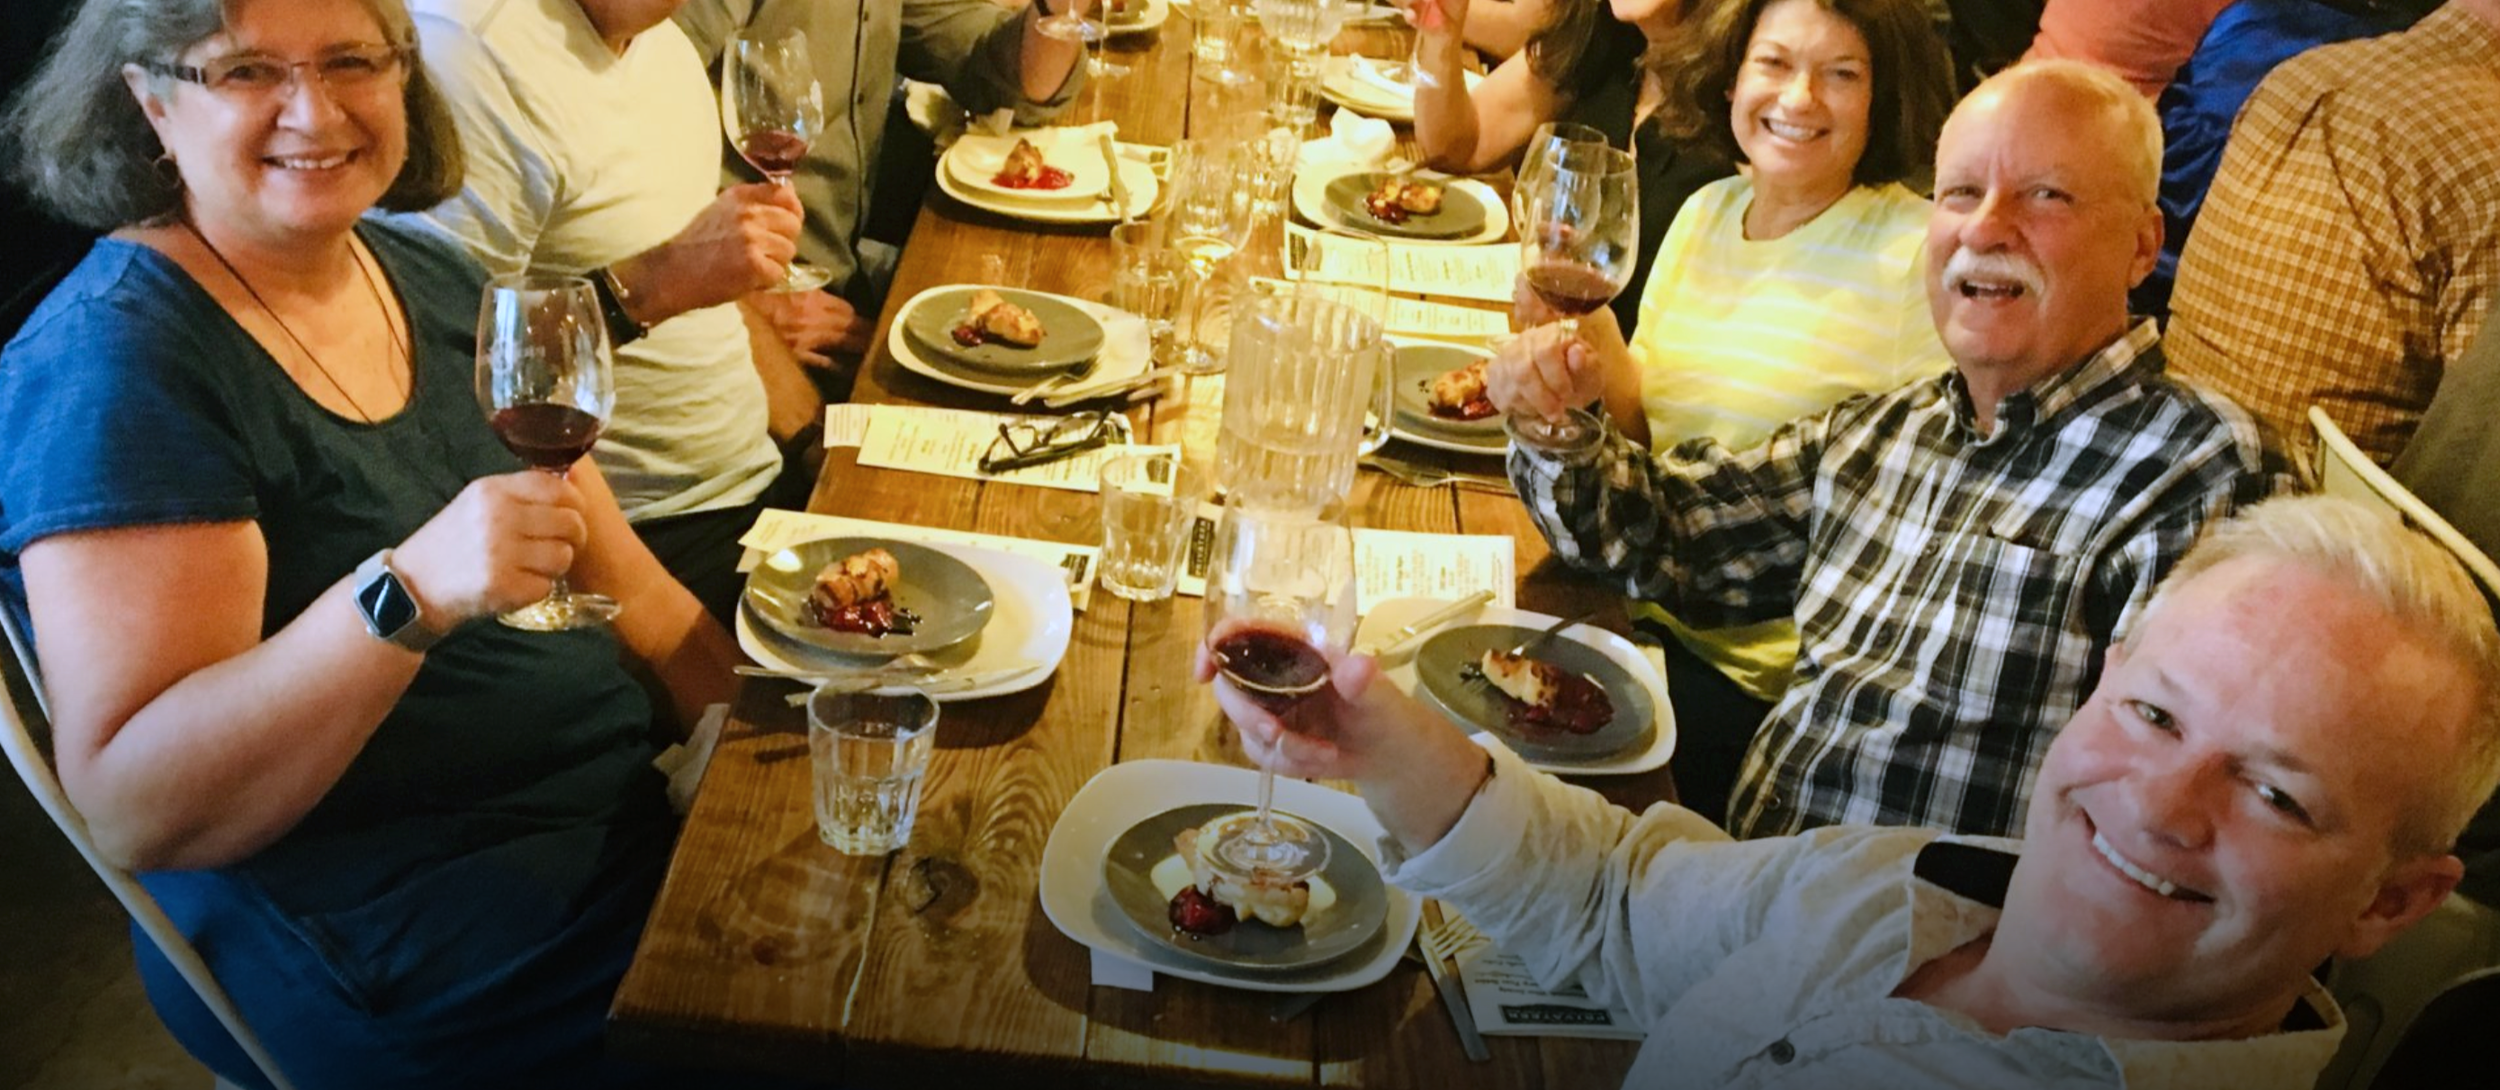 thecoastnews-lick-the-plate-wine-food-and-fun-with-oceanside-wine-society-2019-08-04.png